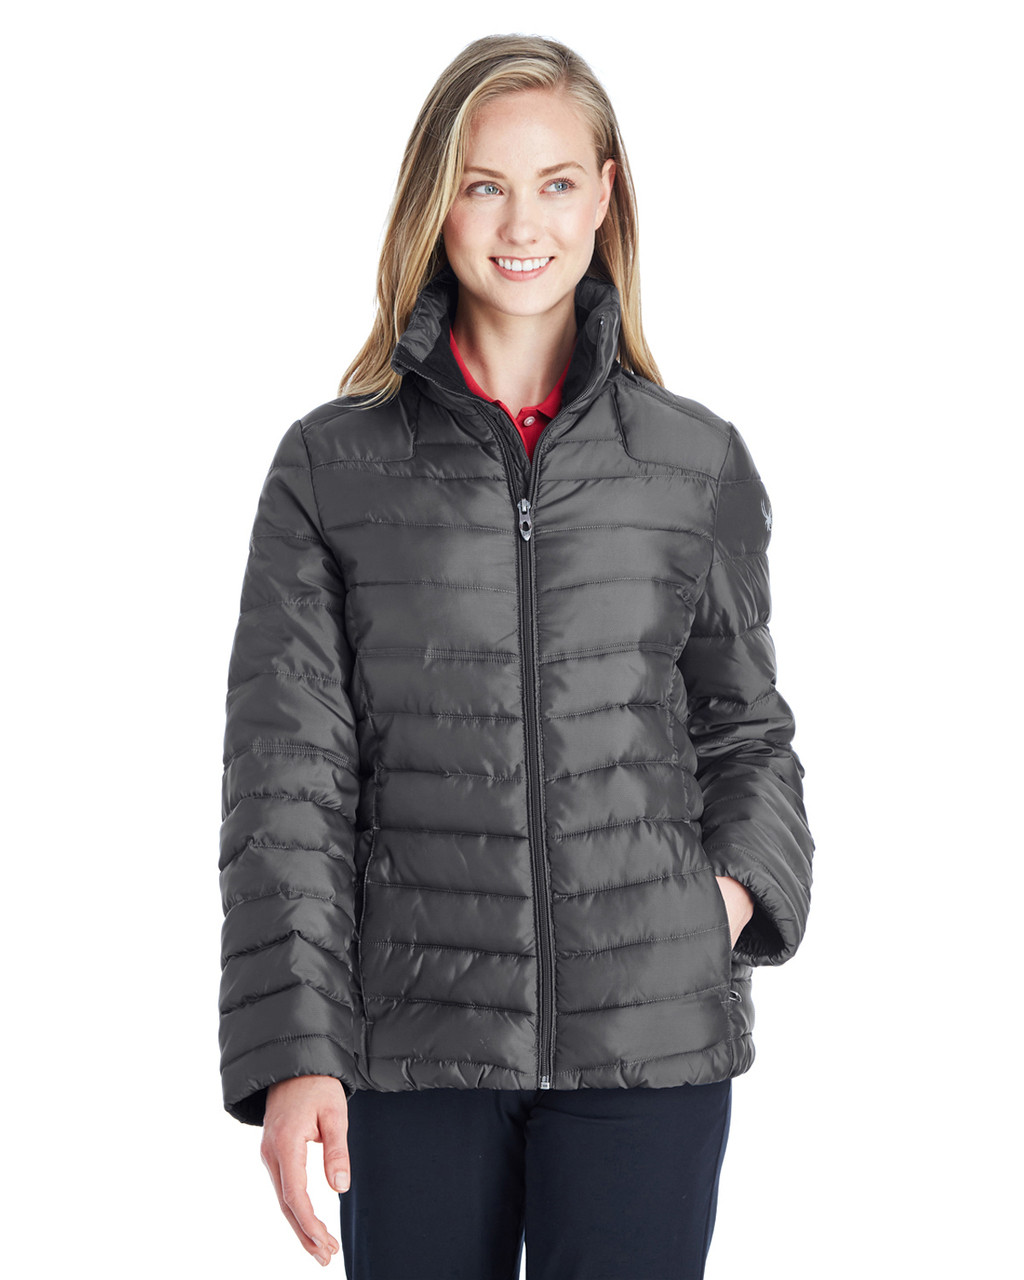 Pollar/Alloy - 187336 Spyder Ladies' Supreme Insulated Puffer Jacket | BlankClothing.ca